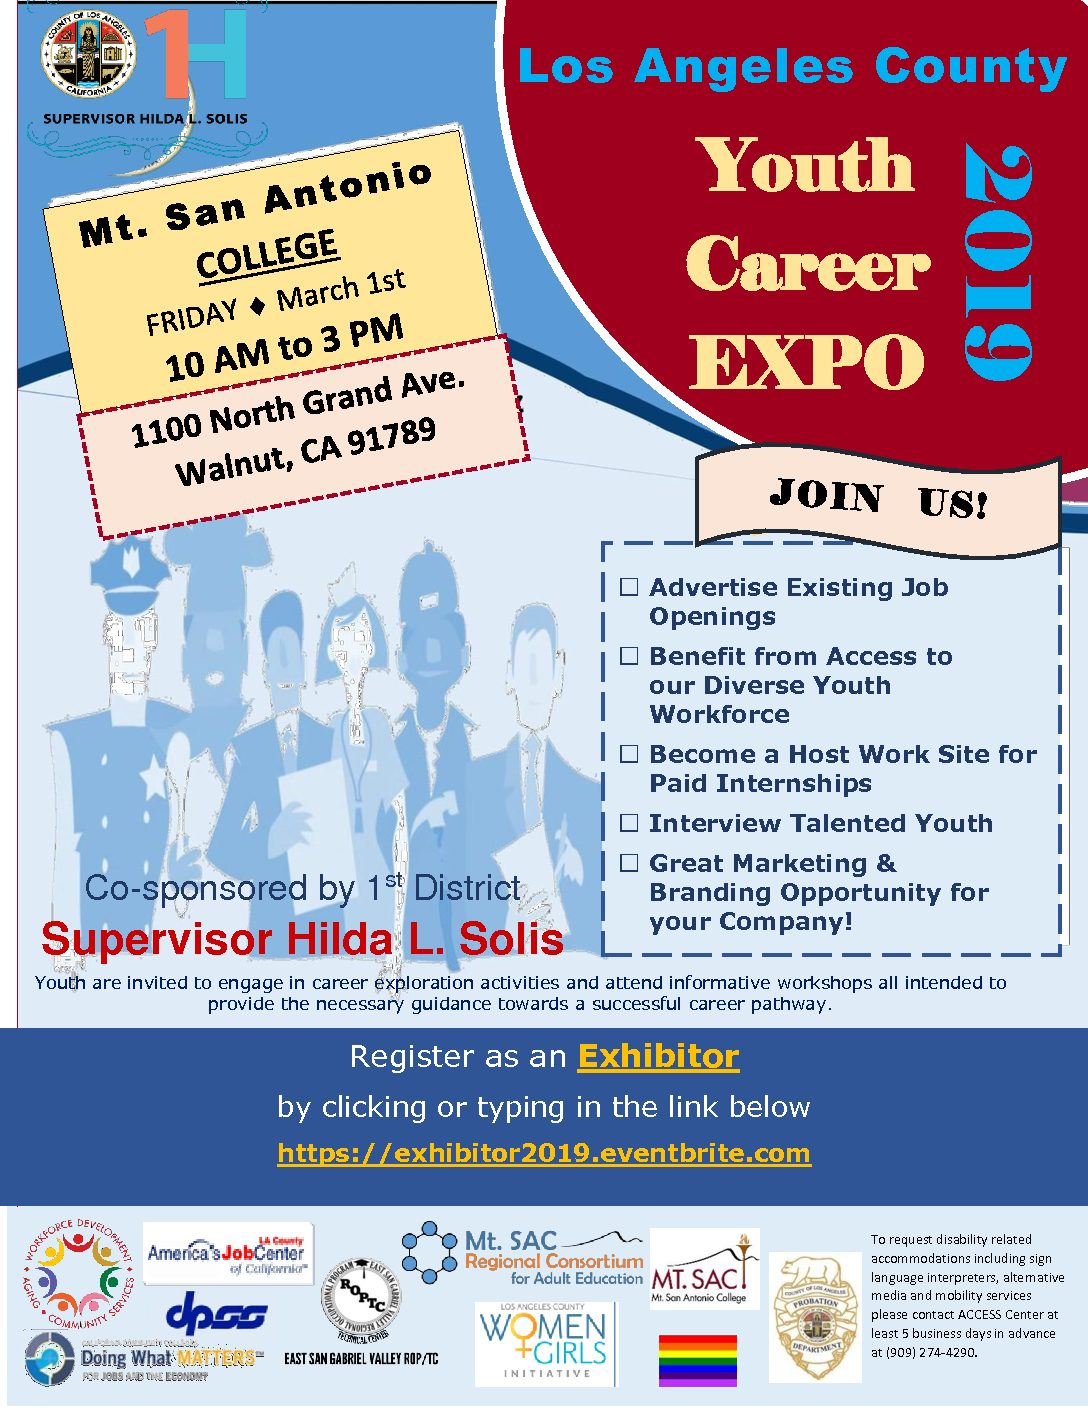 Los Angeles County Youth Career Expo 2019 – Supervisor Hilda